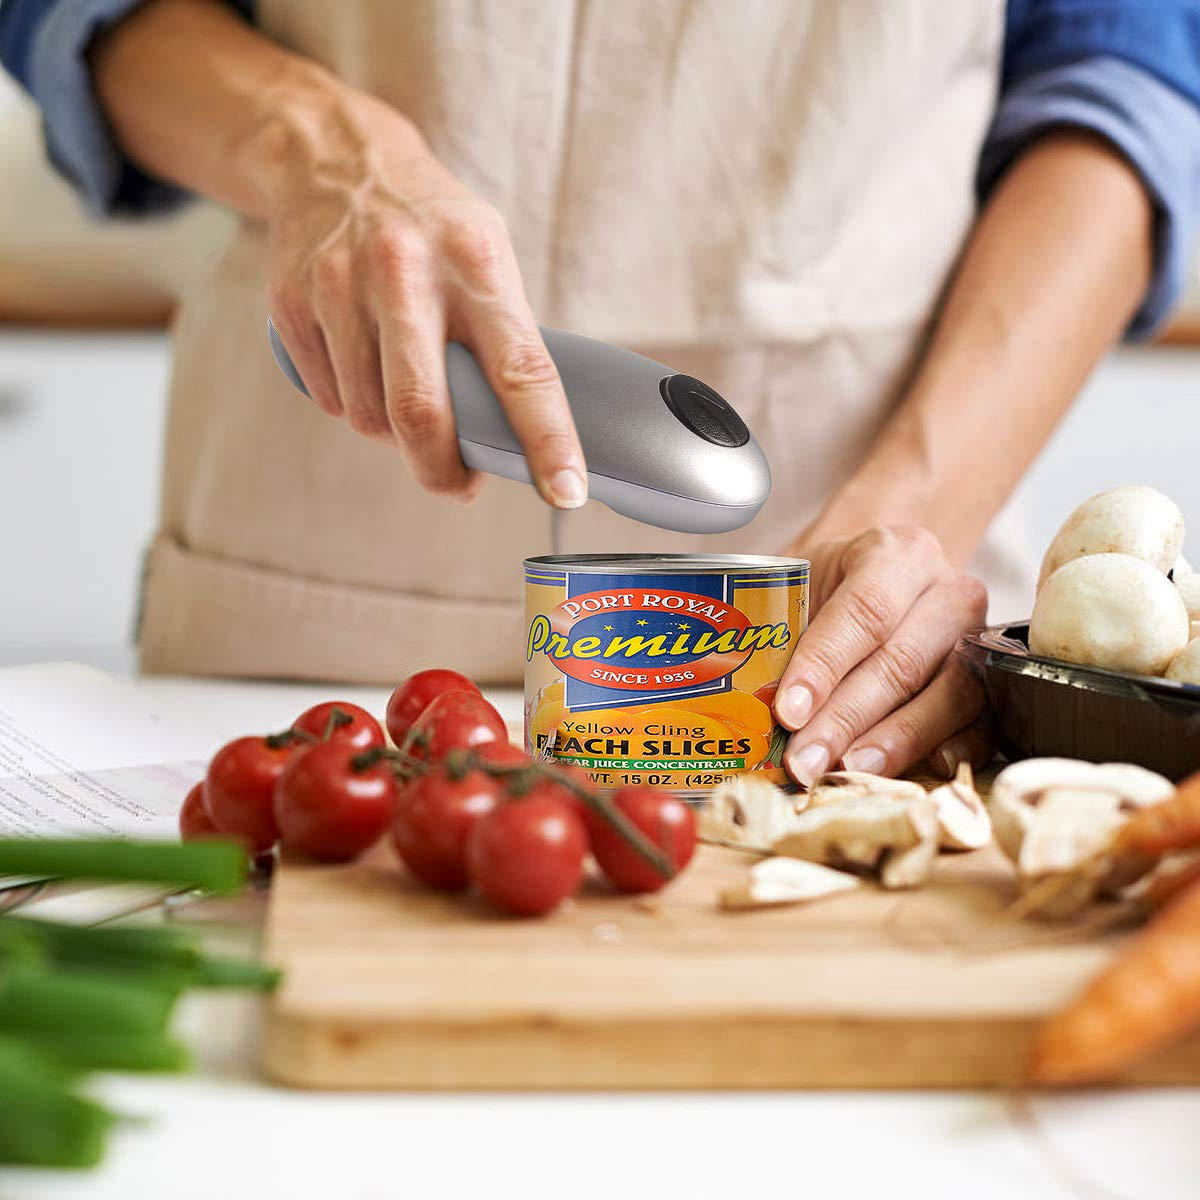 Electric Can Opener, Smooth Edge Automatic Can Opener for Any Size, Best Kitchen Gadget for Arthritis and Seniors (GrayClassic1) by instecho (Image #7)